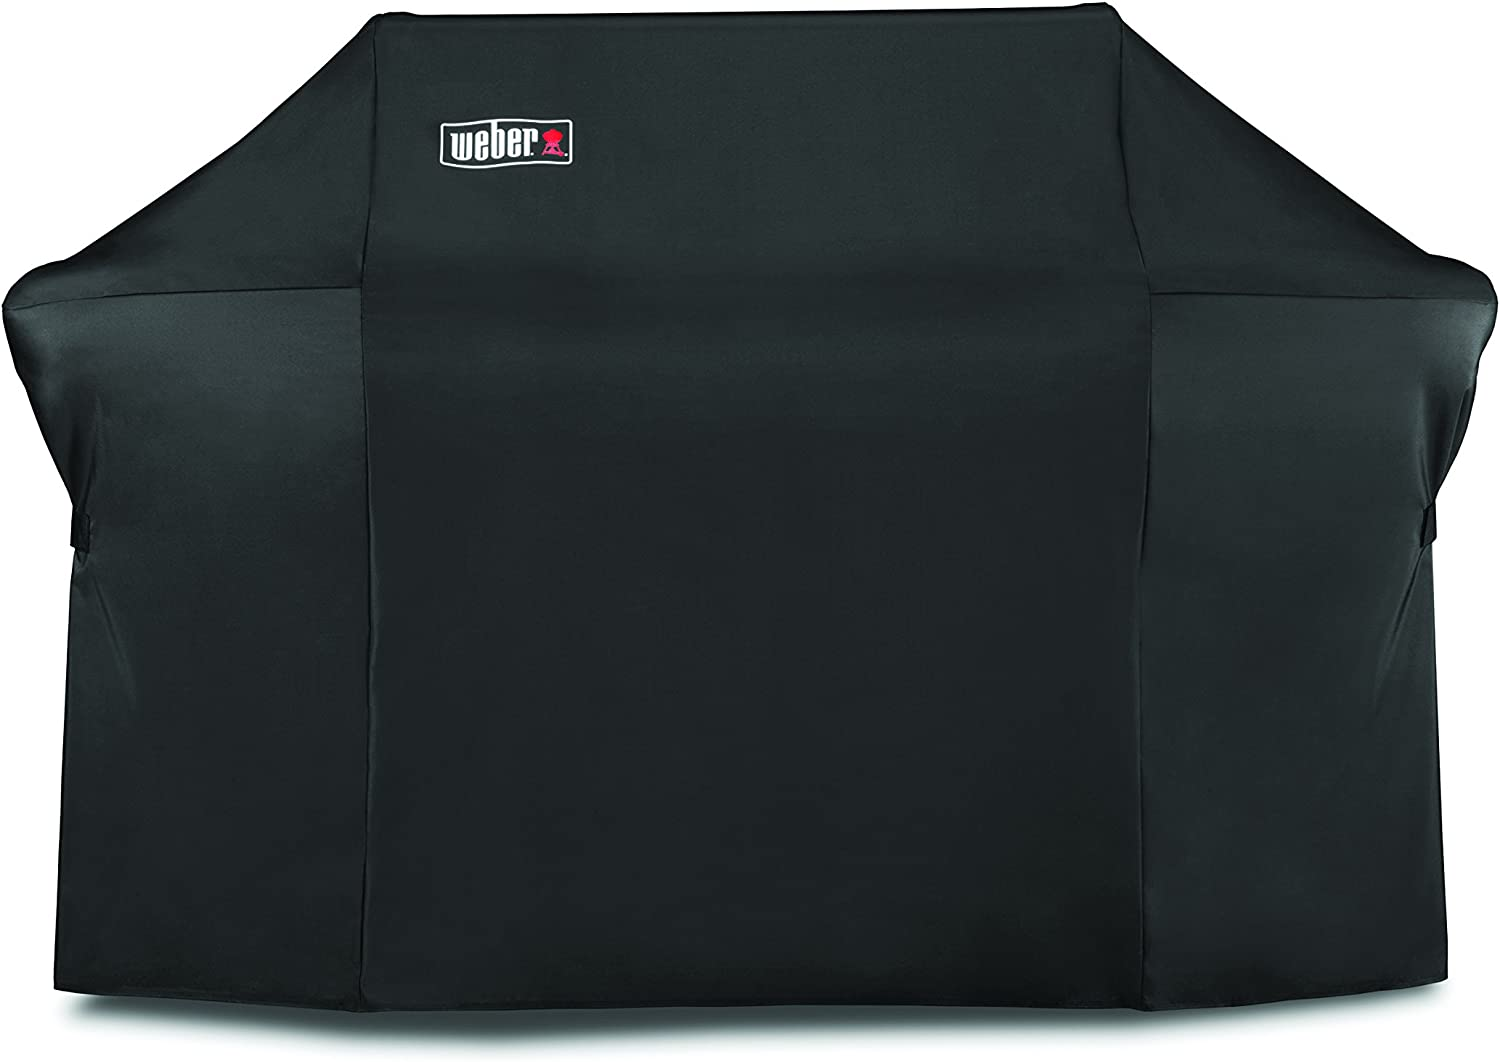 Weber 7109 Barbecue Cover with Storage Bag for Summit 600 Series Gas Grills